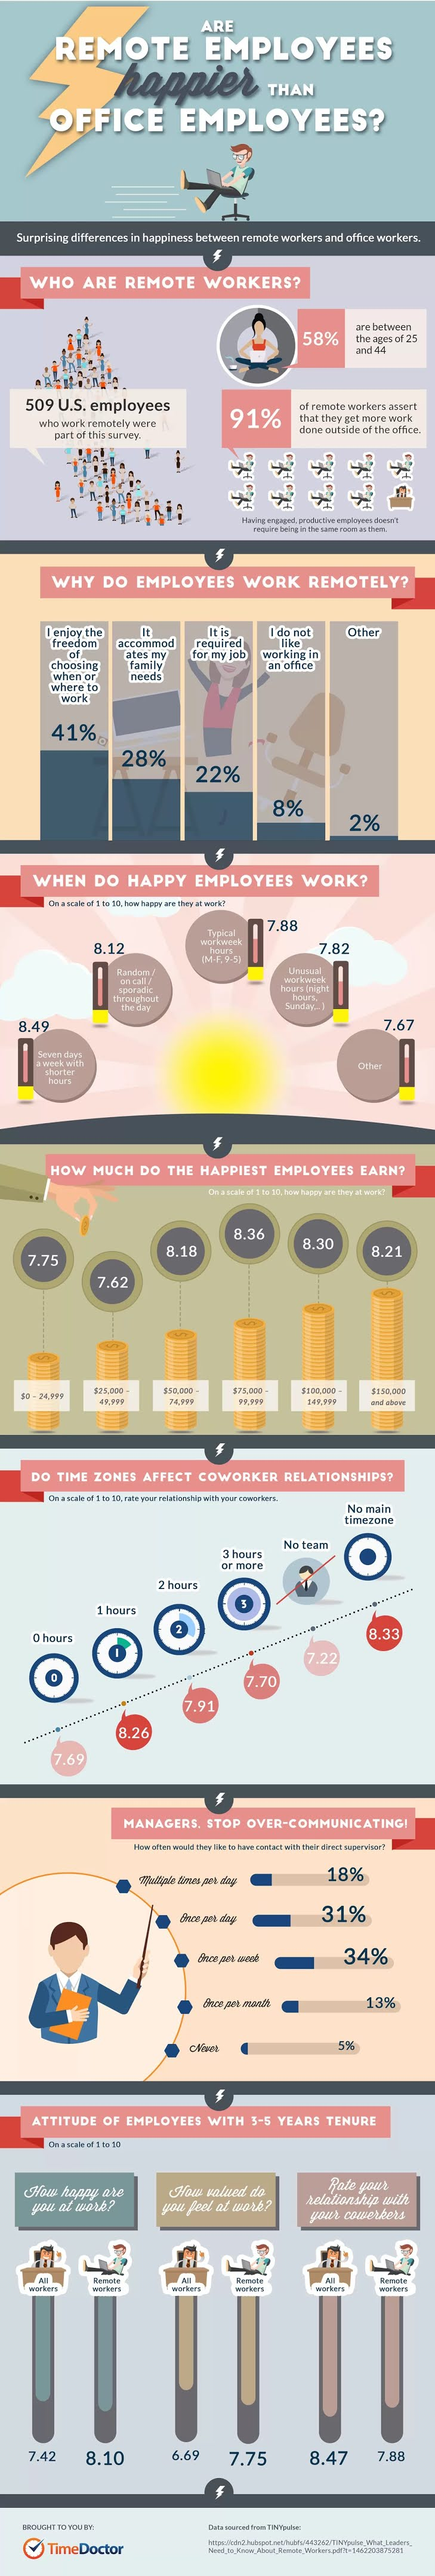 Are Remote Workers Happier Than Office Employees? #infographic #Health #Employee #infographics #Office Employees #Remote Workers #Happiness